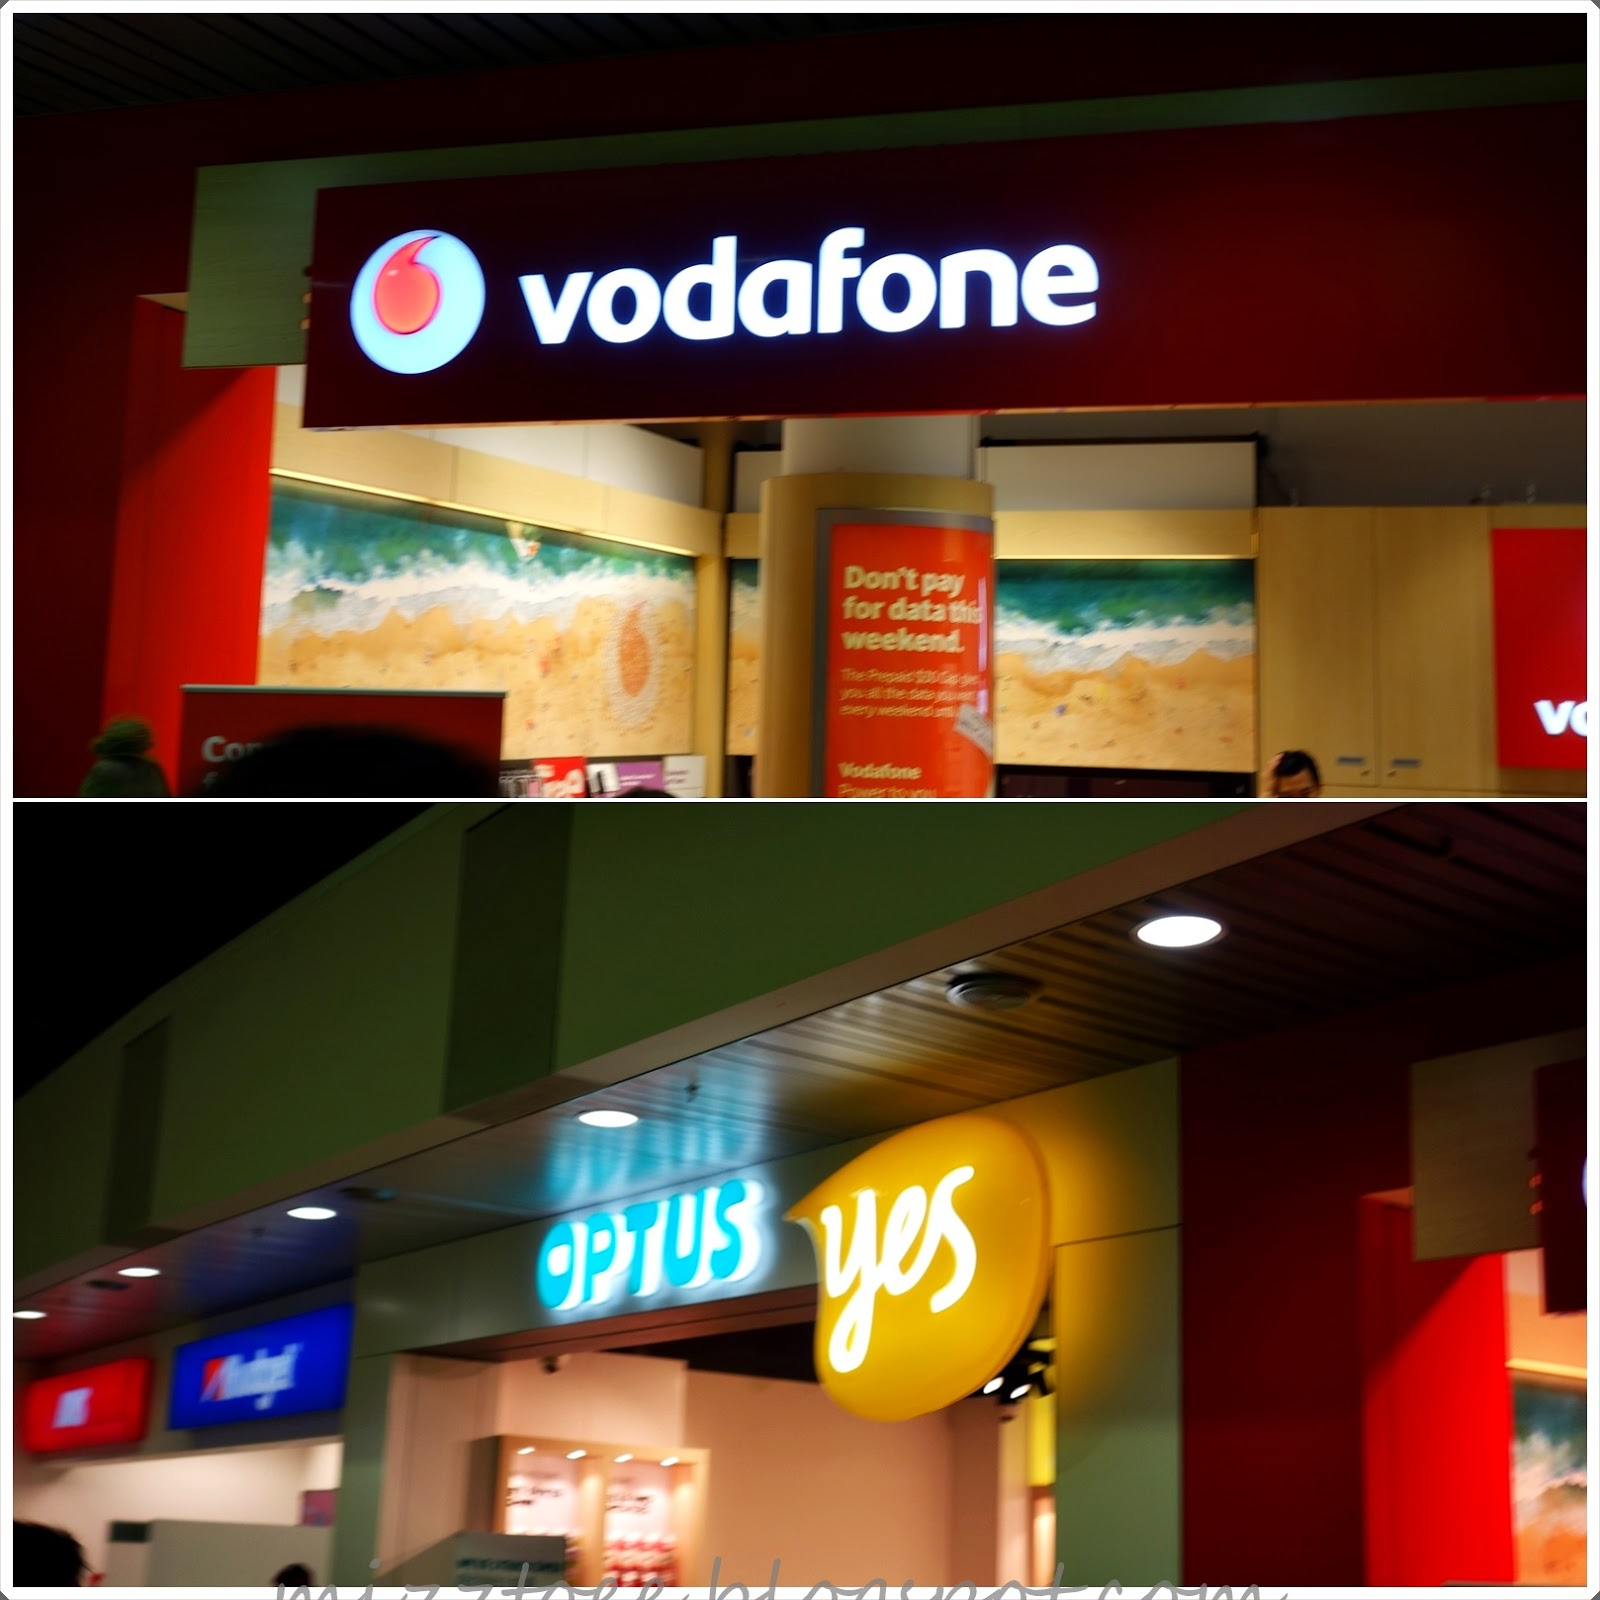 how to get vodafone 346 plan